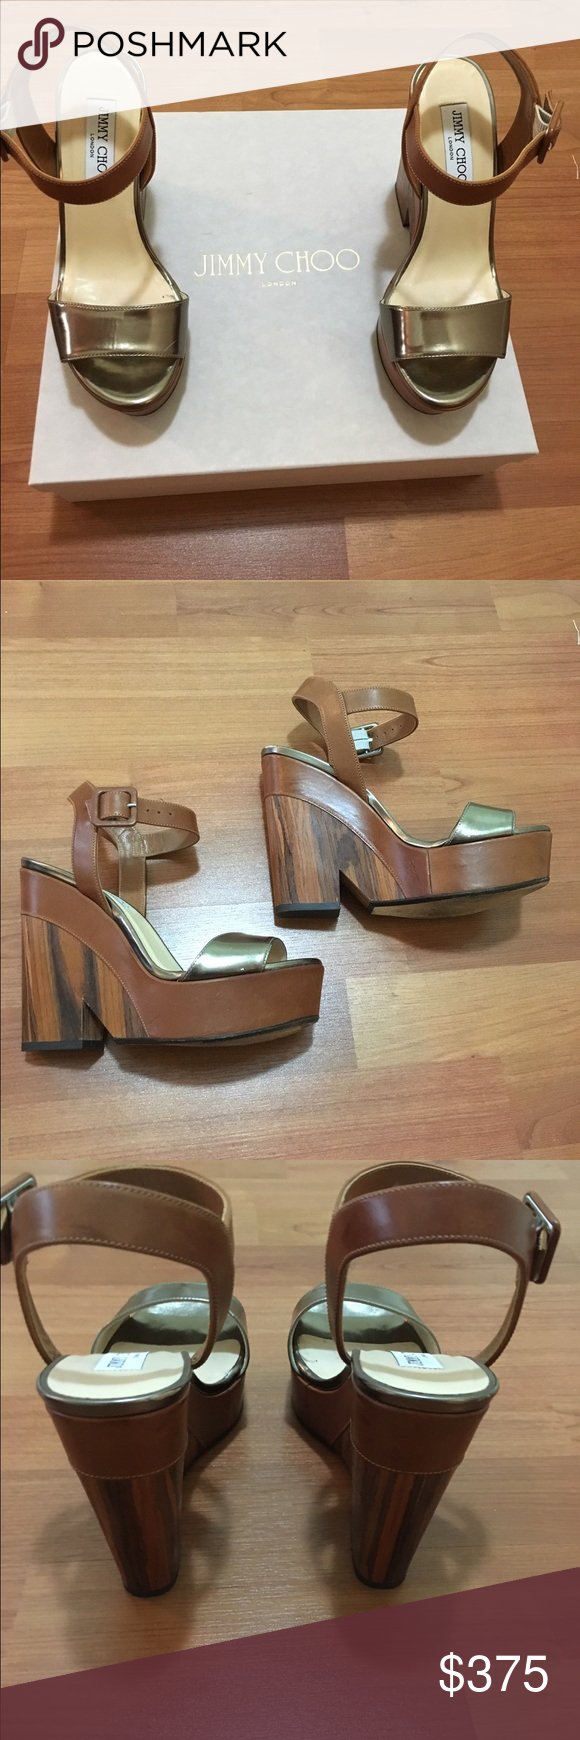 Wedges Sandals Like new auth. Sandals. Only worn three times. Jimmy Choo Shoes Wedges